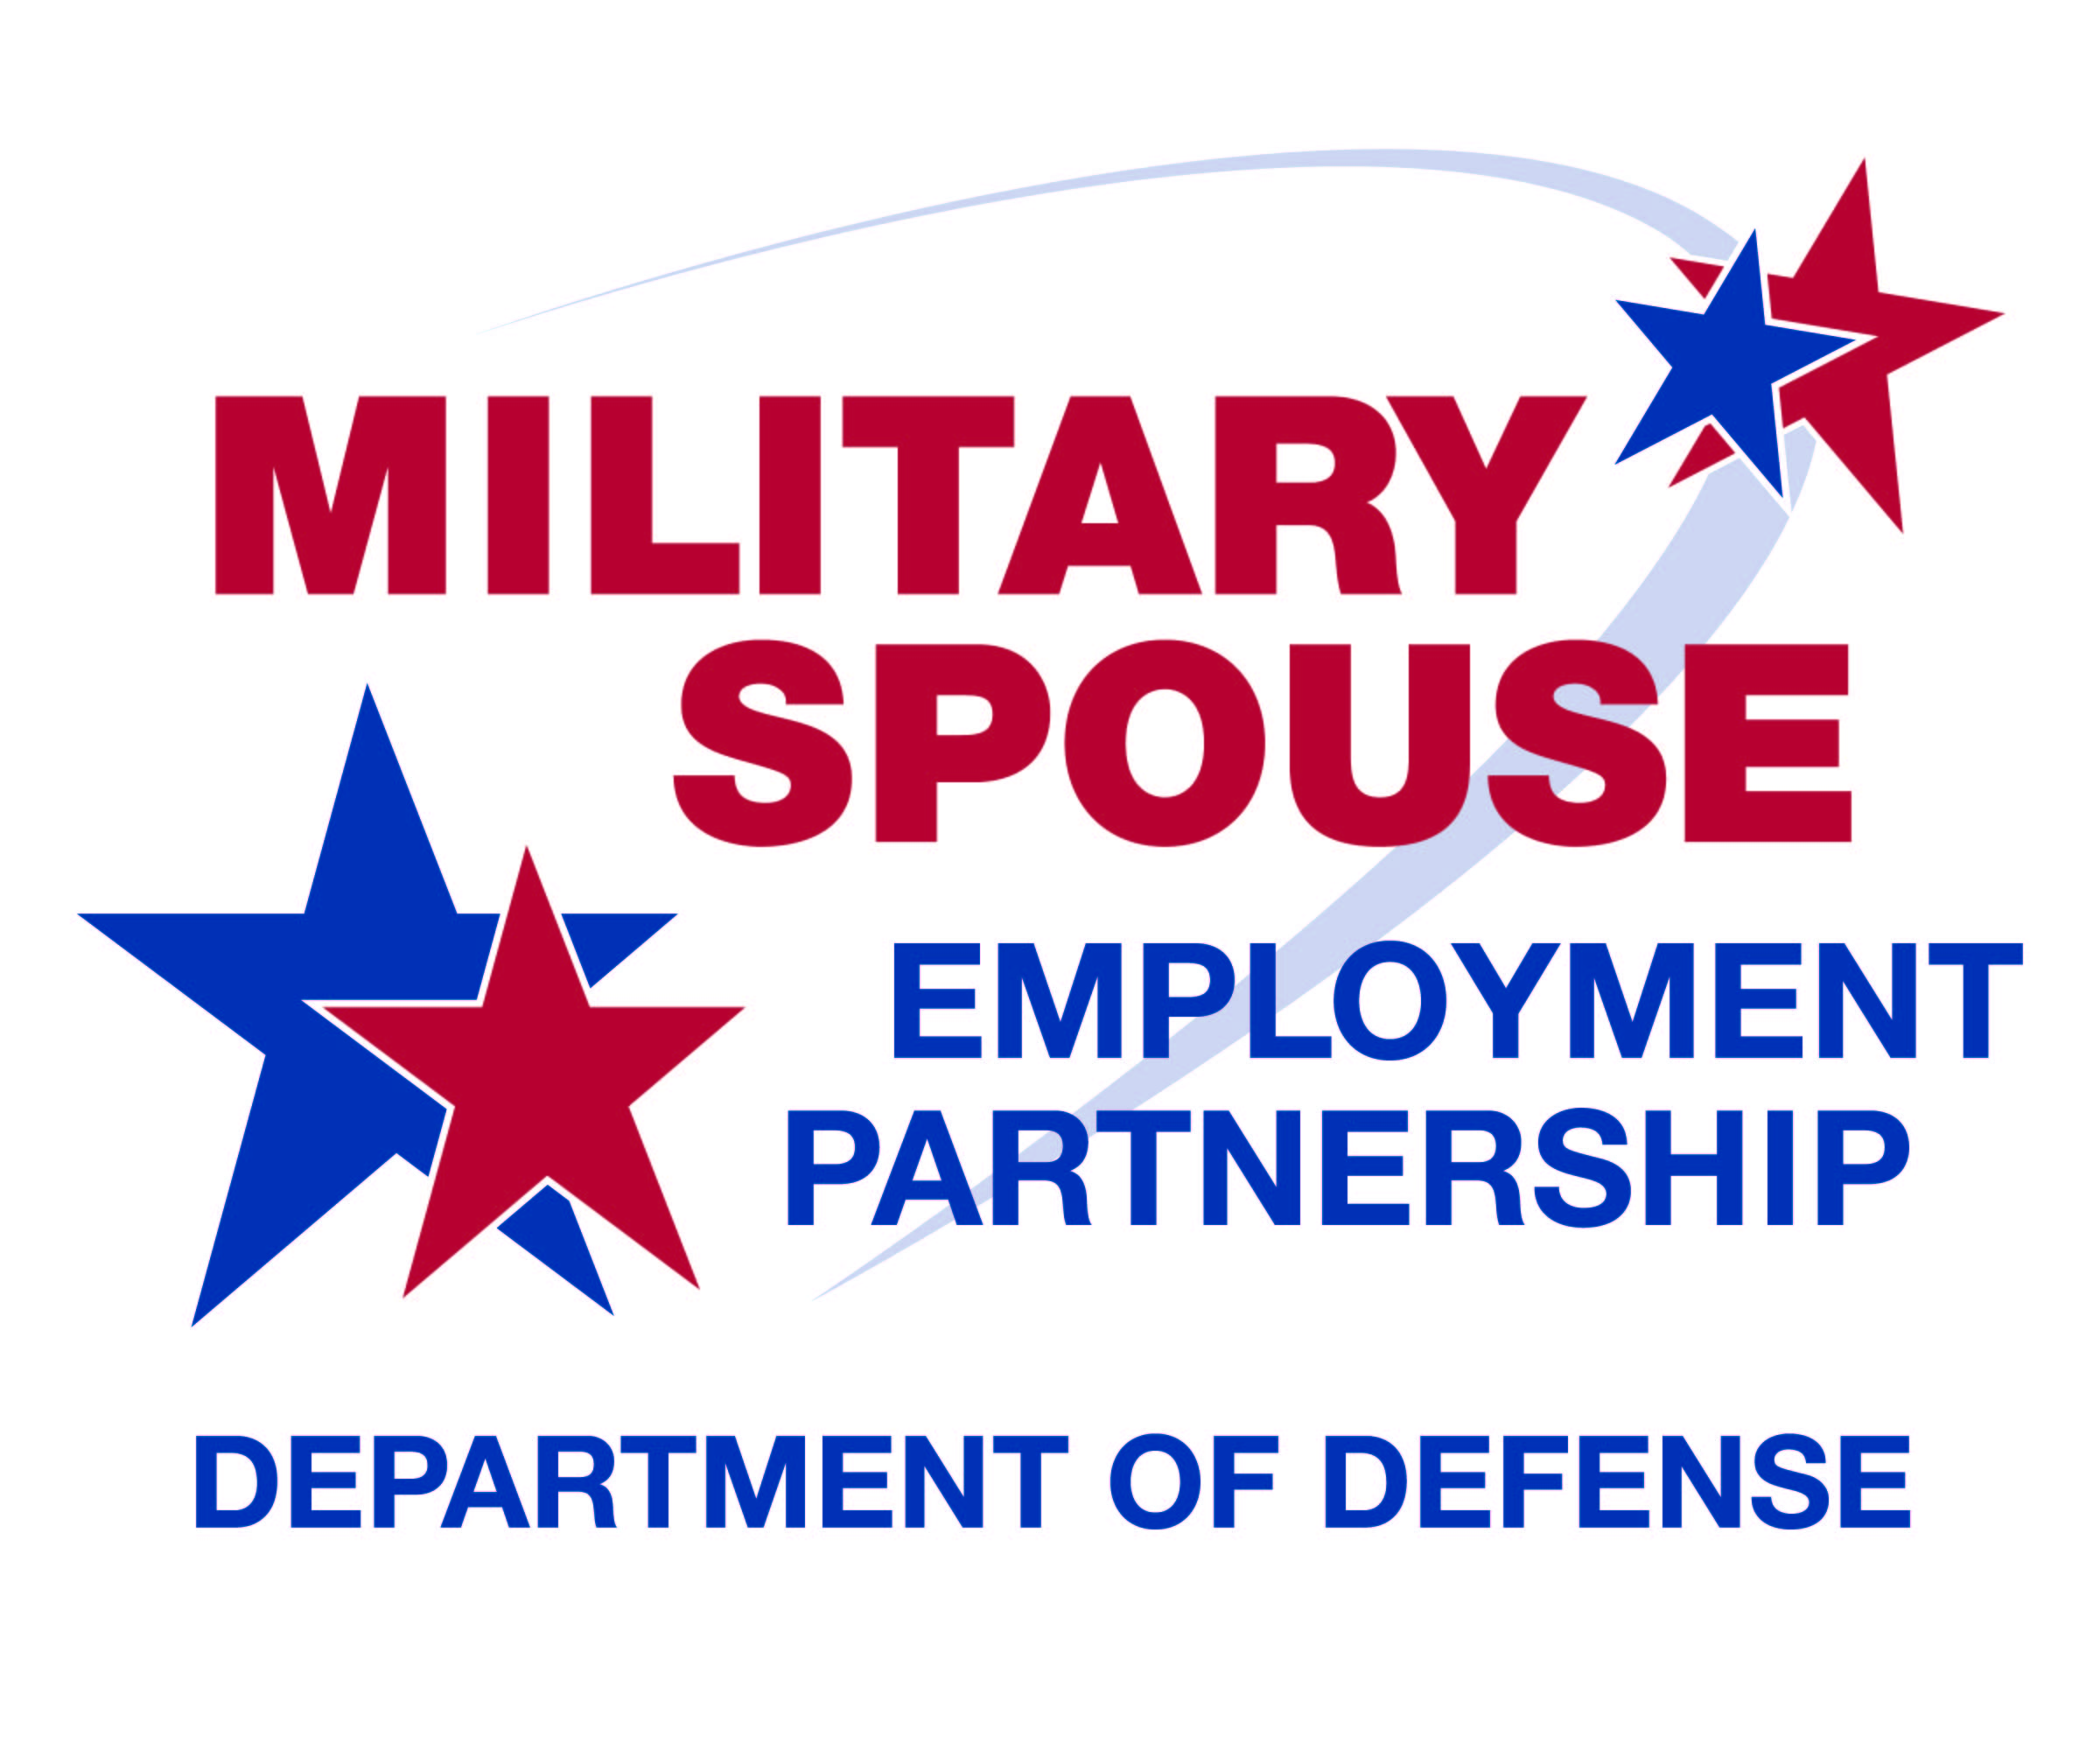 Military Spouse Employment Partnership (MSEP)